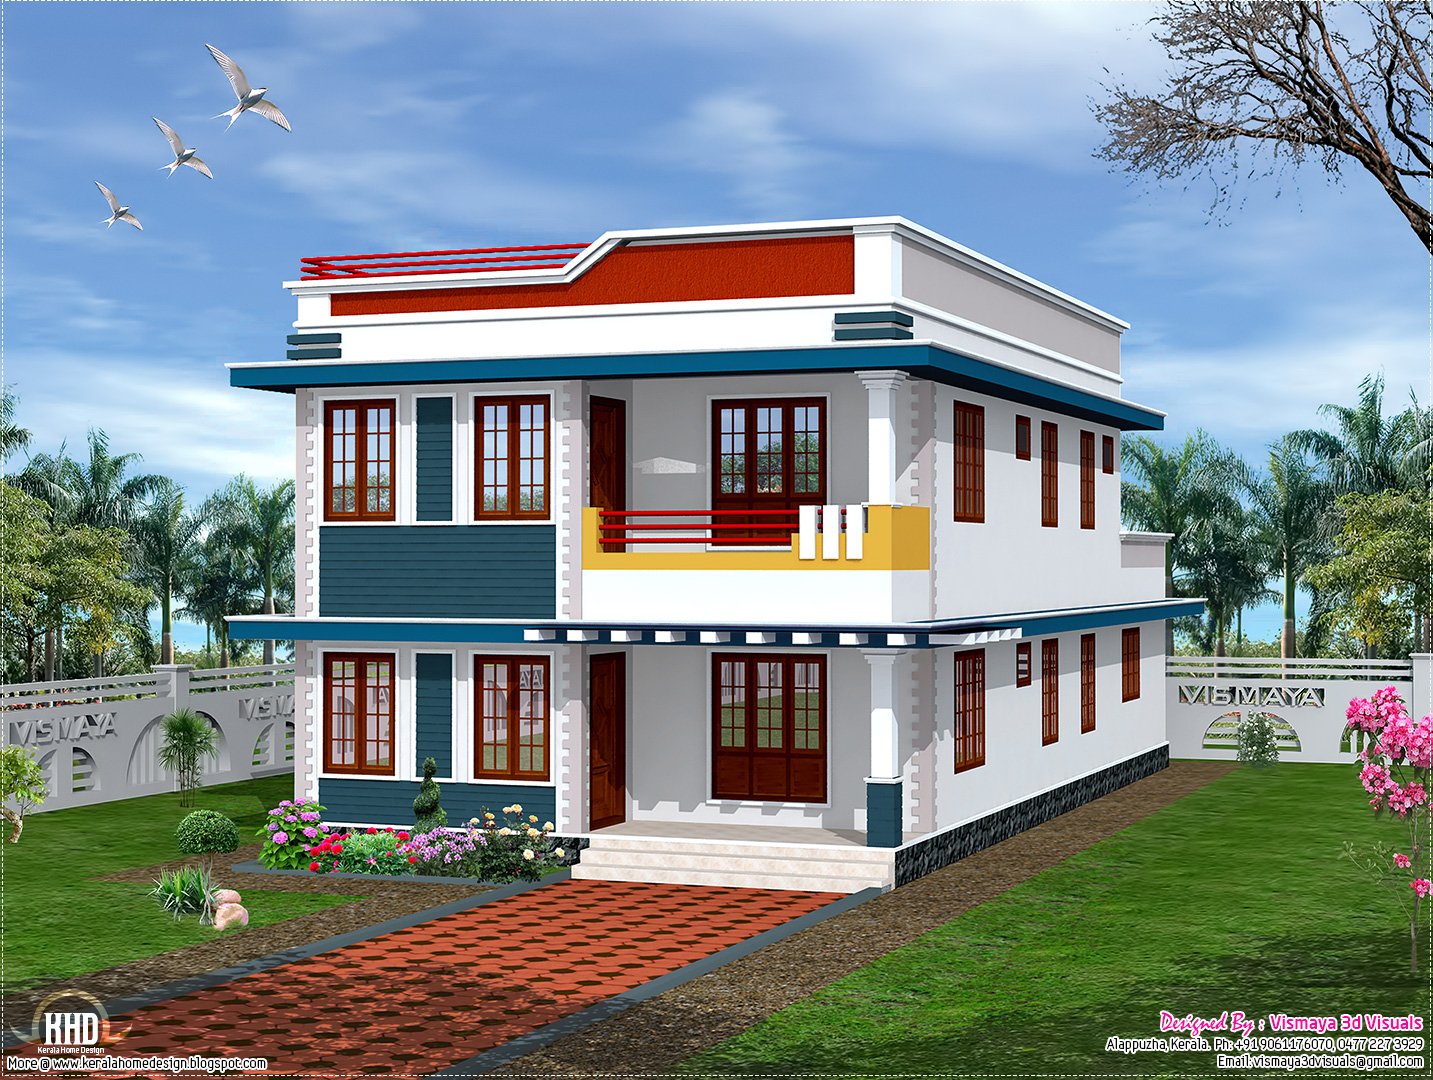 bedroom home design by vismaya 3d visuals ambalapuzha